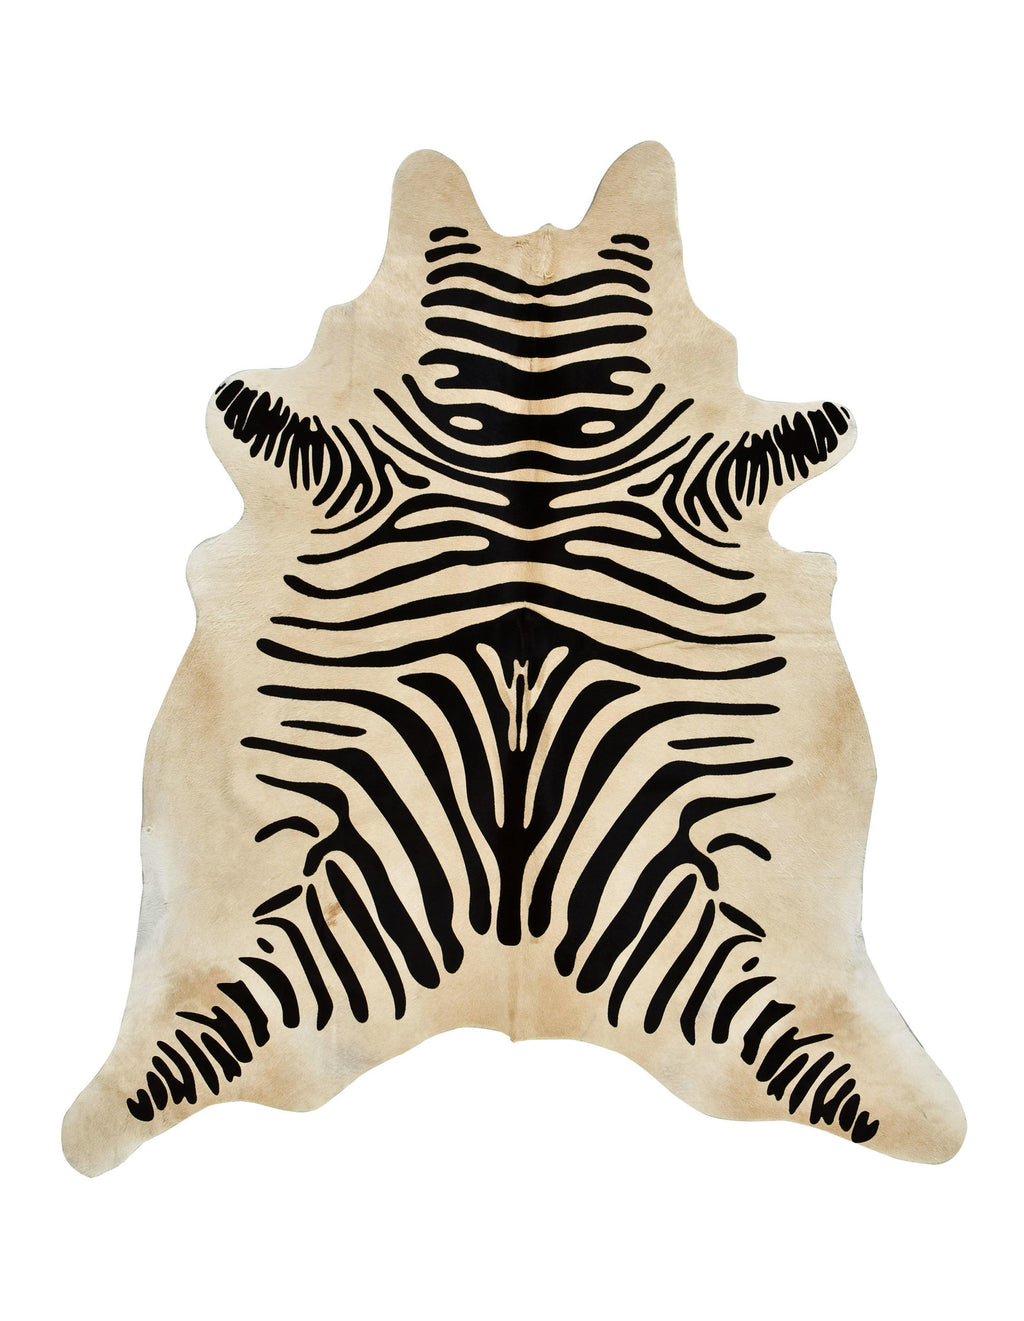 Zebra Print cowhide rug Black on Light Brown